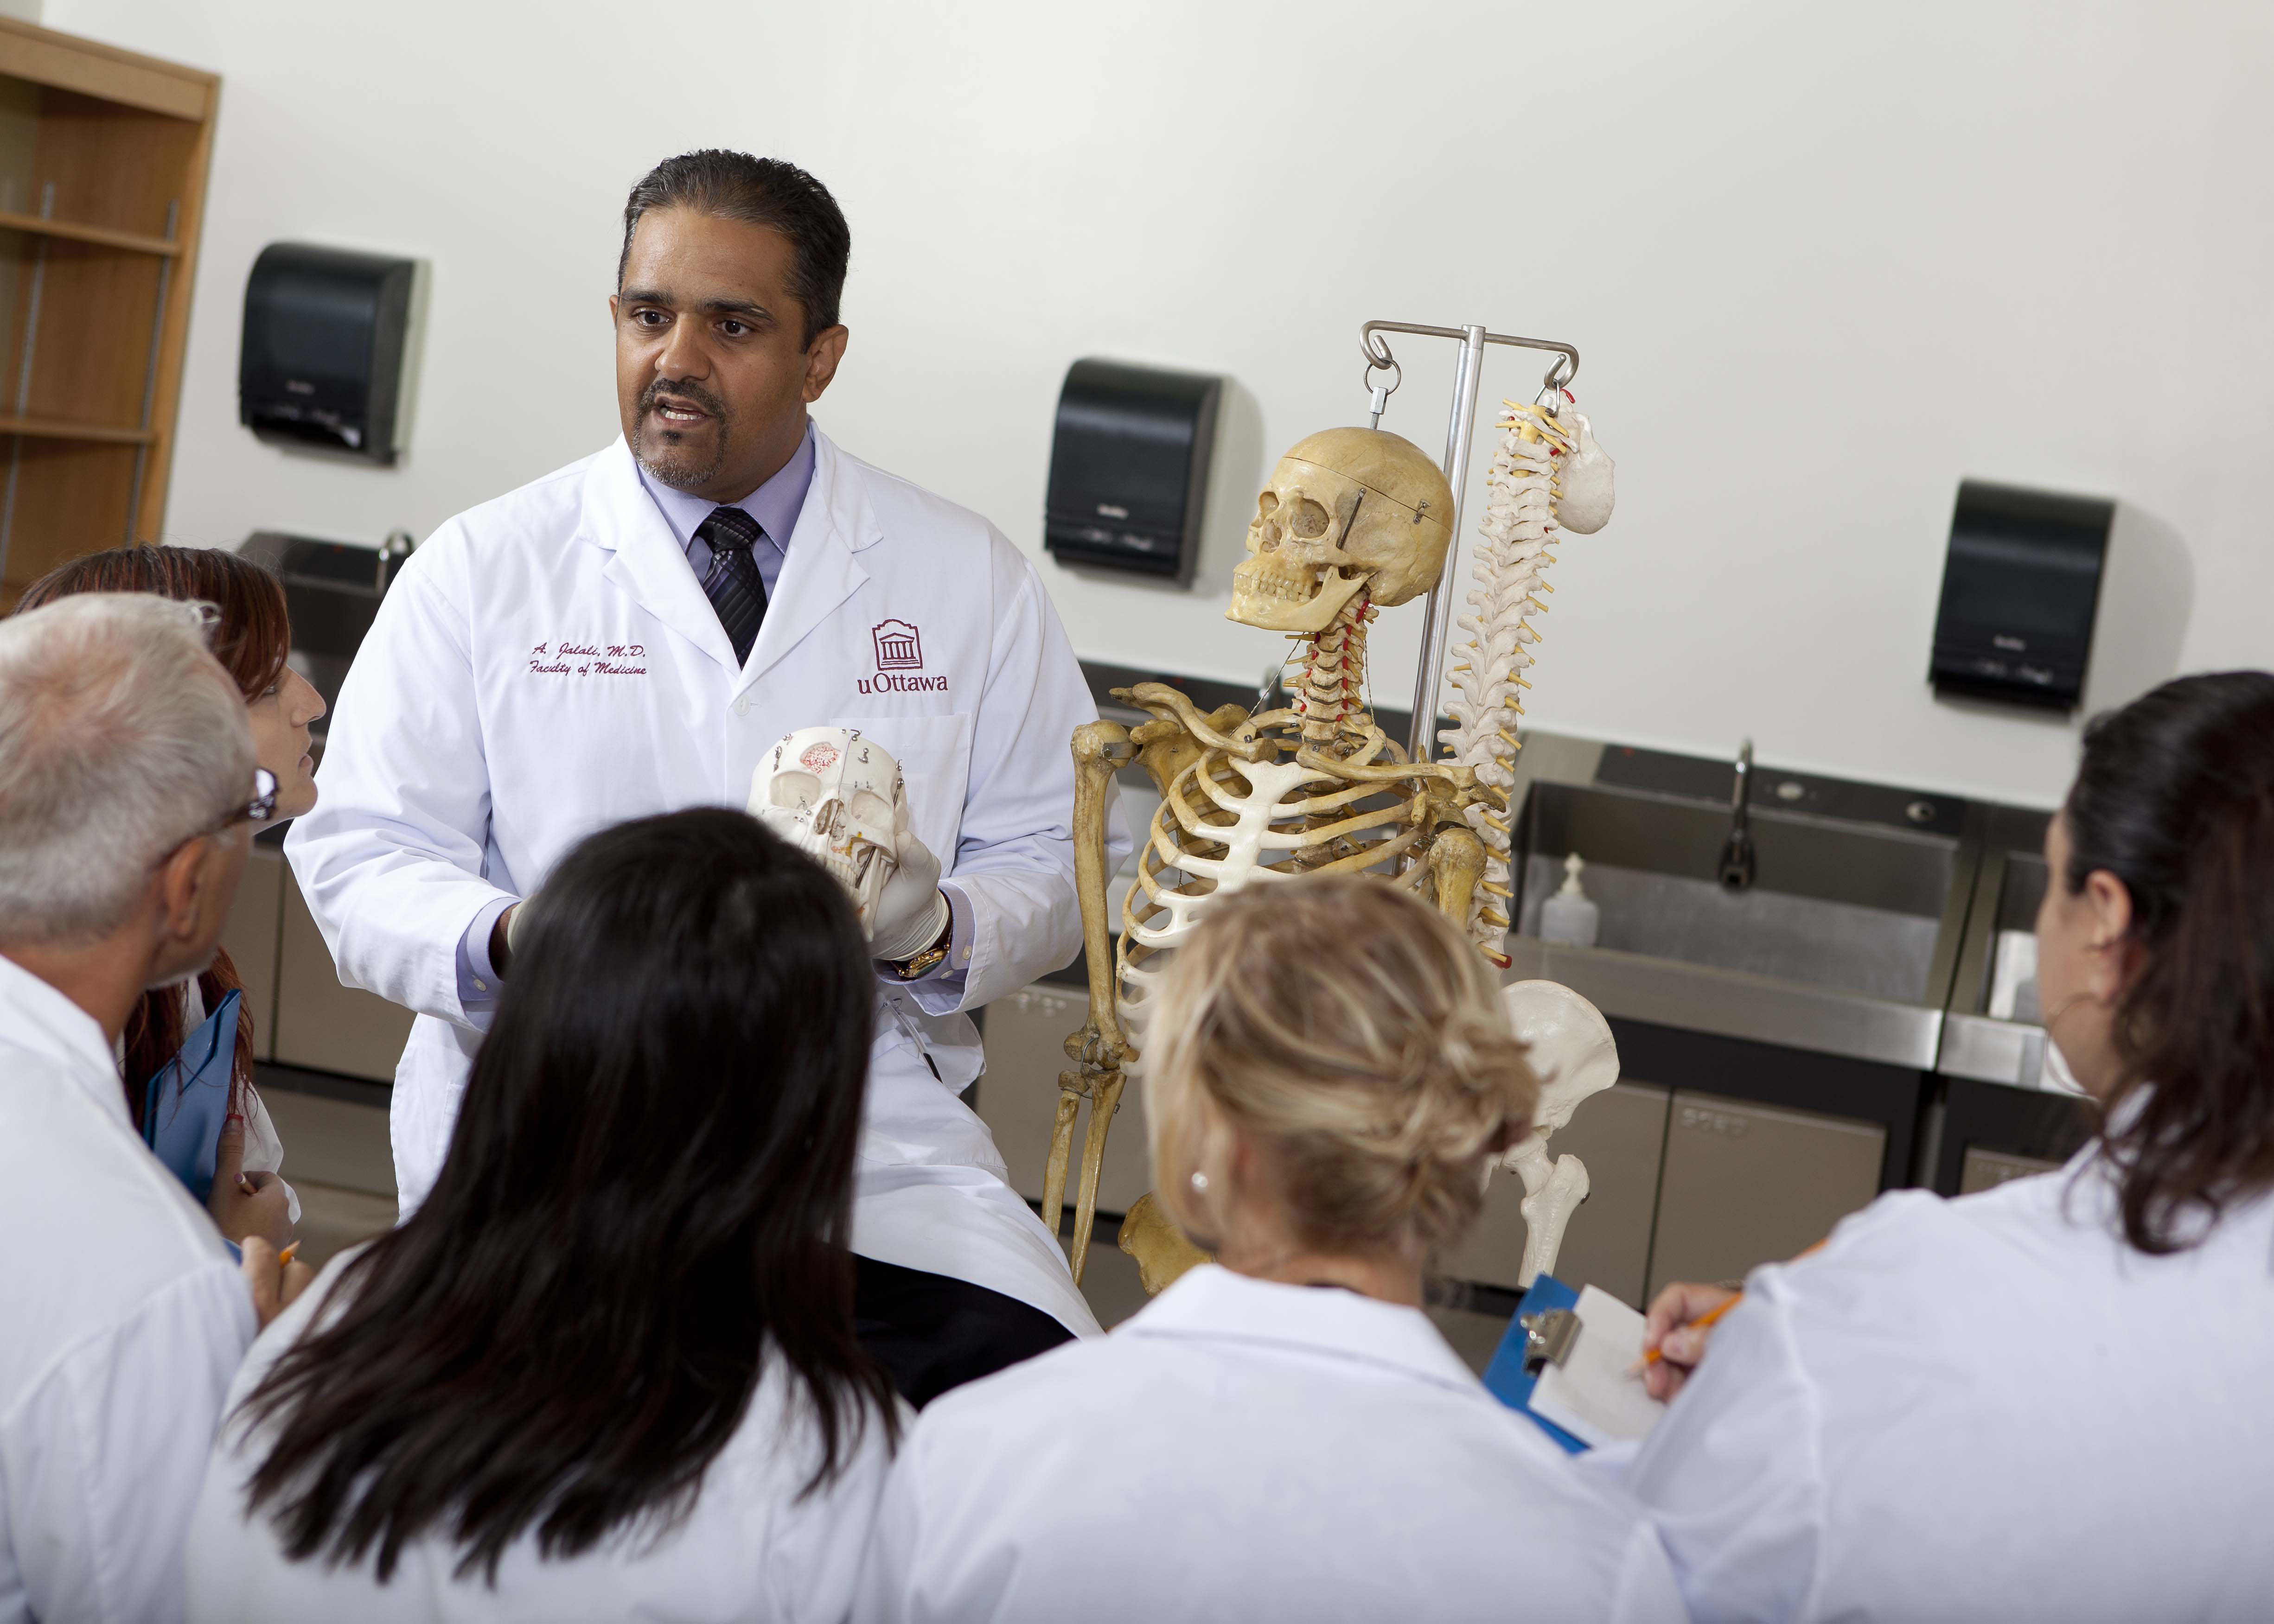 A man in a lab coat stands beside an anatomical skeleton model in a medical teaching lab. He is talking to a group of five people, also in lab coats.